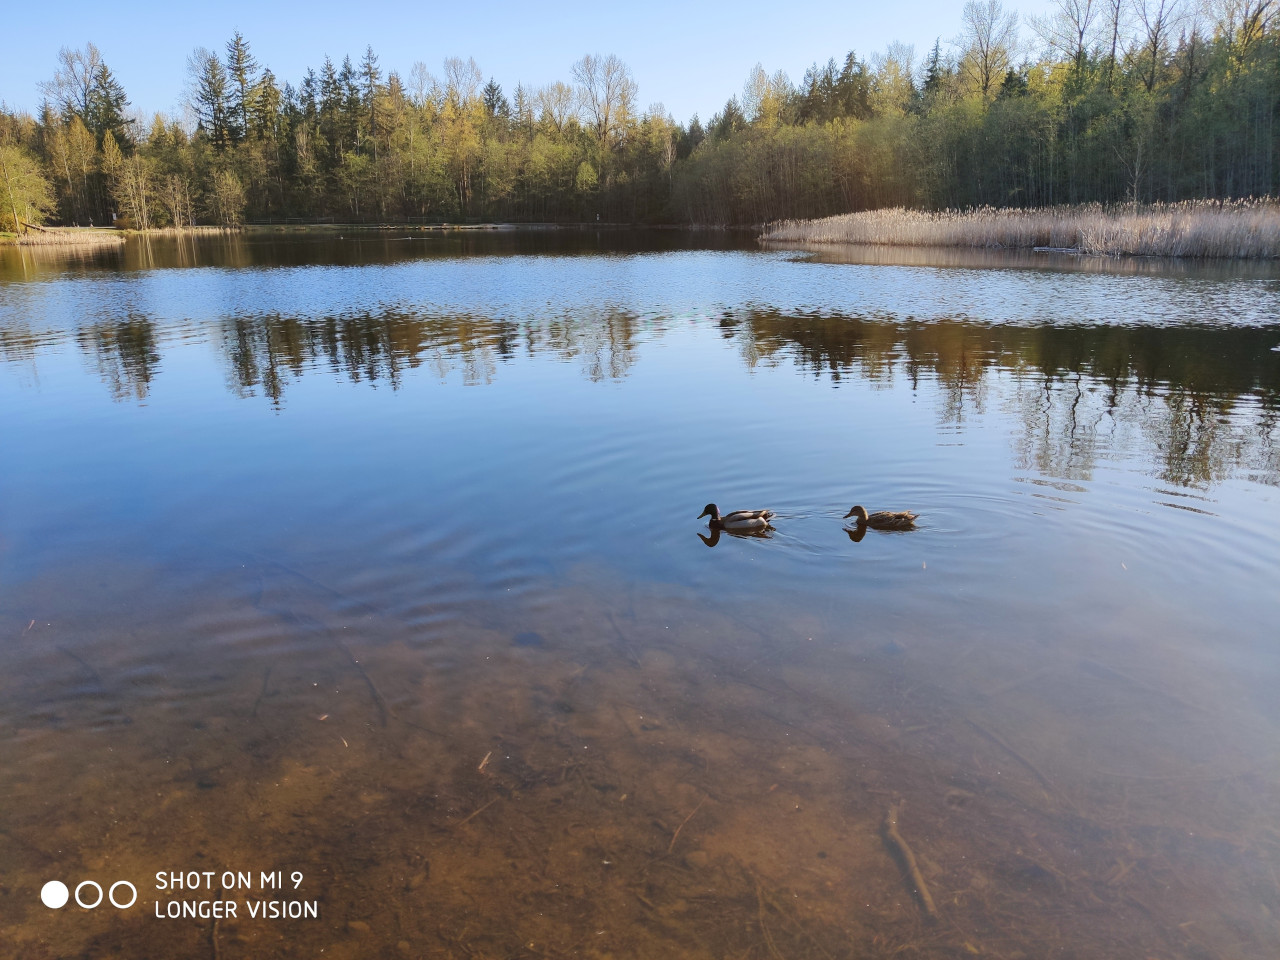 A Pair of Ducks In The Lake